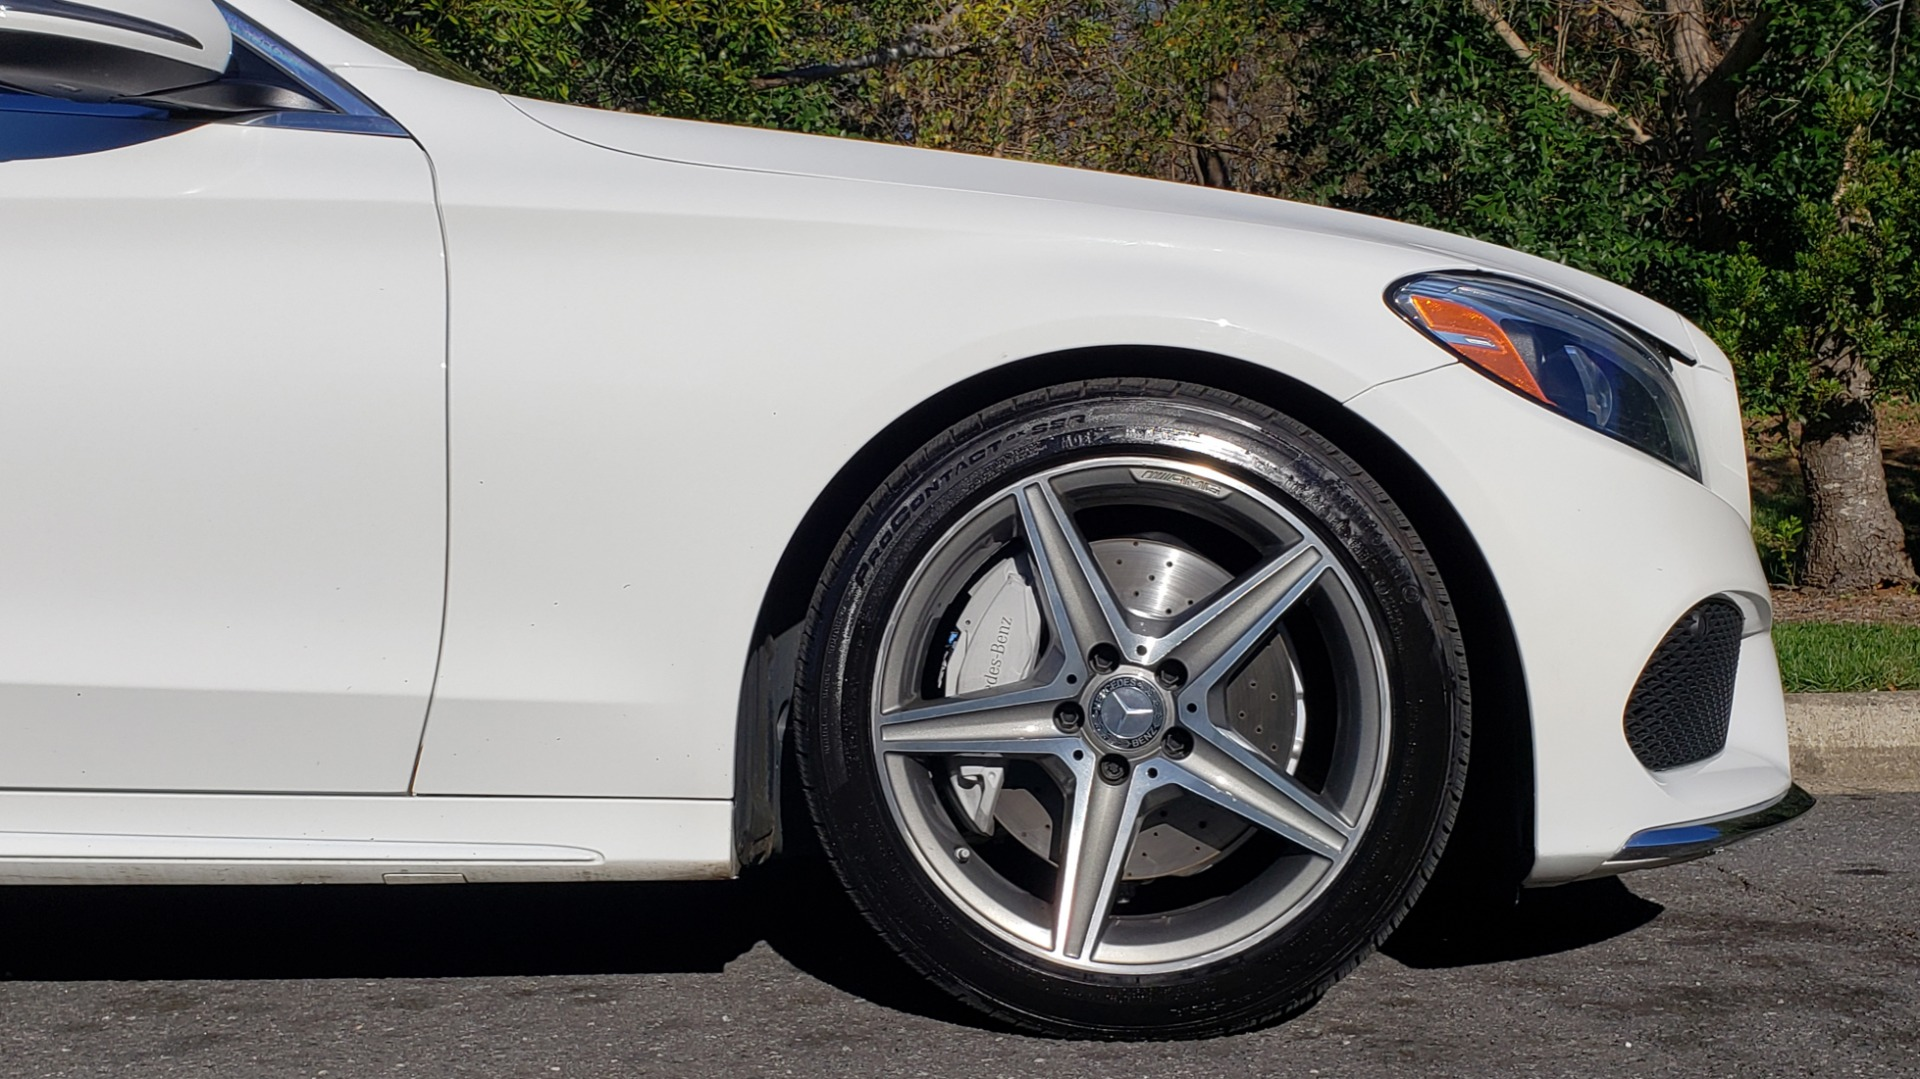 Used 2017 Mercedes-Benz C-CLASS C 300 SPORT / PREM PKG / PANO-ROOF / NAV / HTD STST / REARVIEW for sale Sold at Formula Imports in Charlotte NC 28227 78